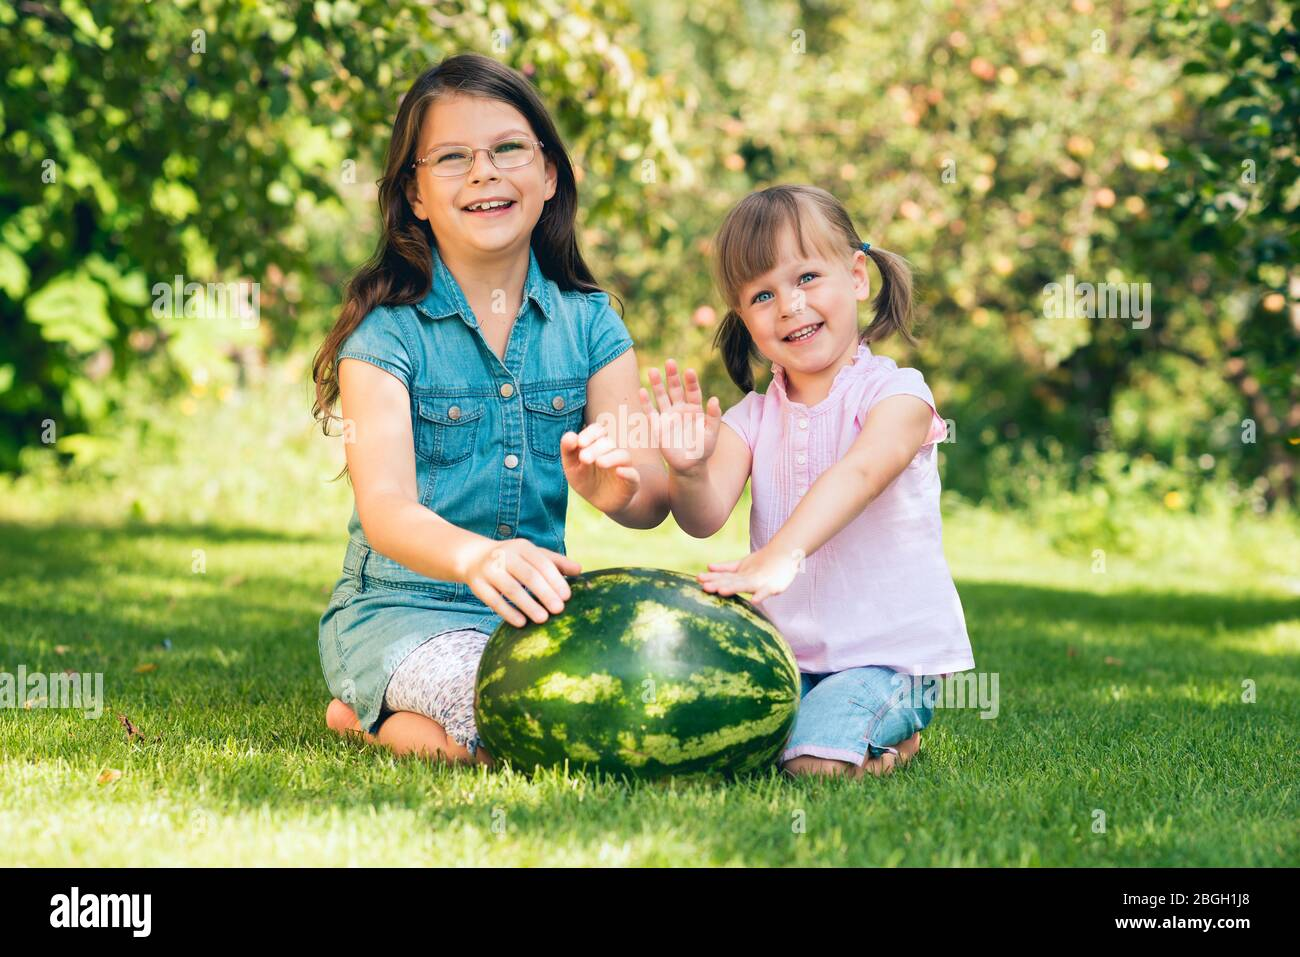 Little toddler girls squatting by the large watermelon on the lawn in the summer garden - spending free time together concept - shallow depth of field Stock Photo